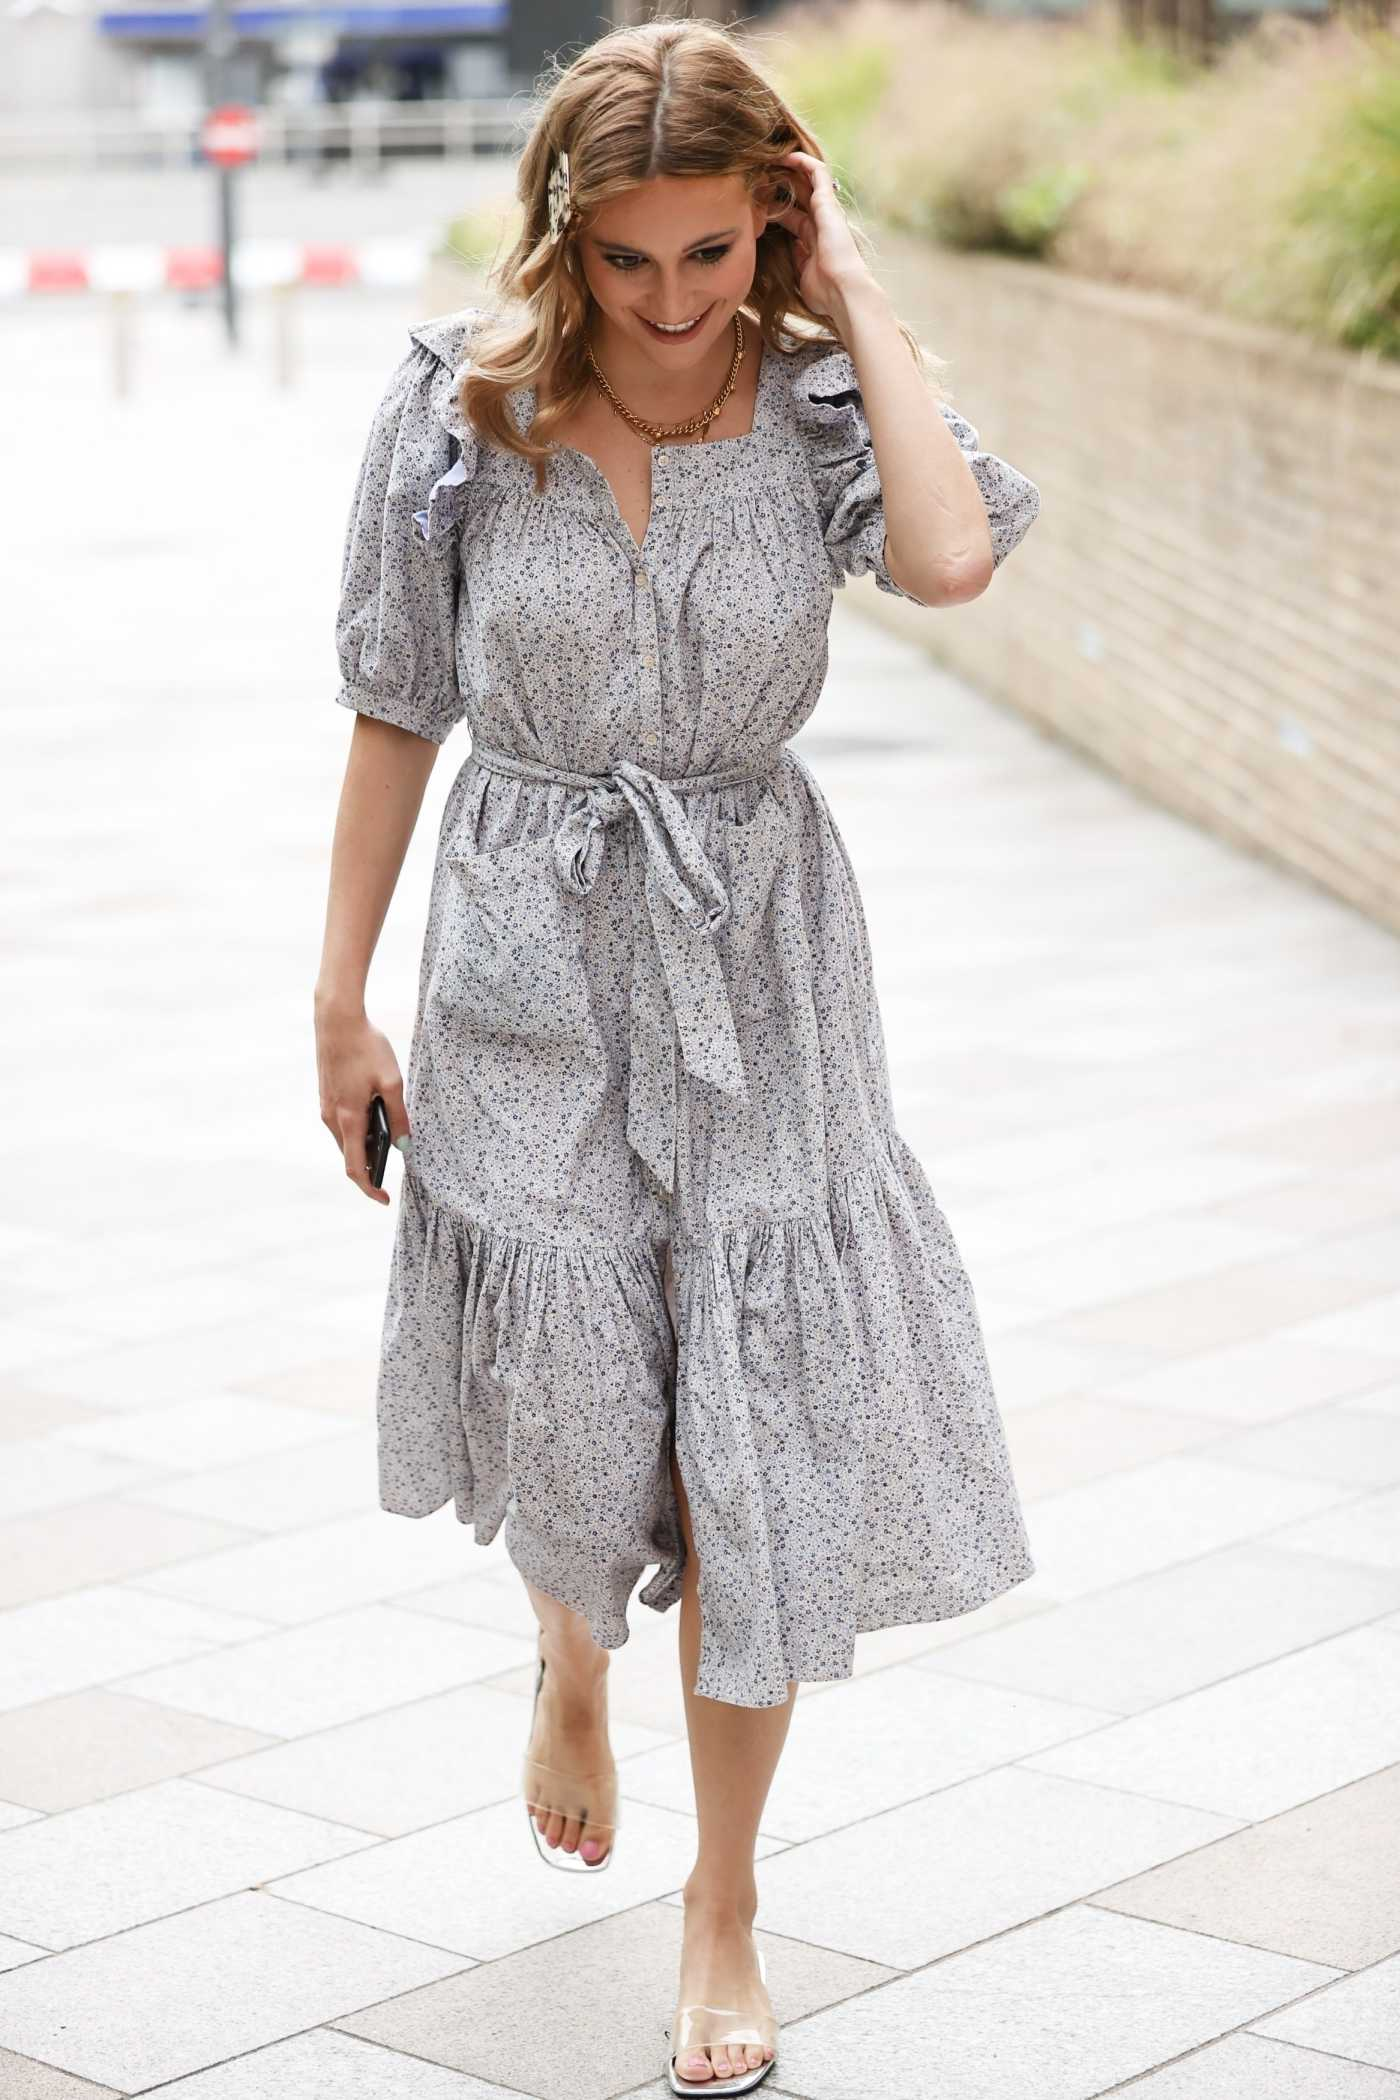 Pixie Lott in a Gray Floral Dress Arrives at the Sunday Brunch TV Show in London 07/26/2020